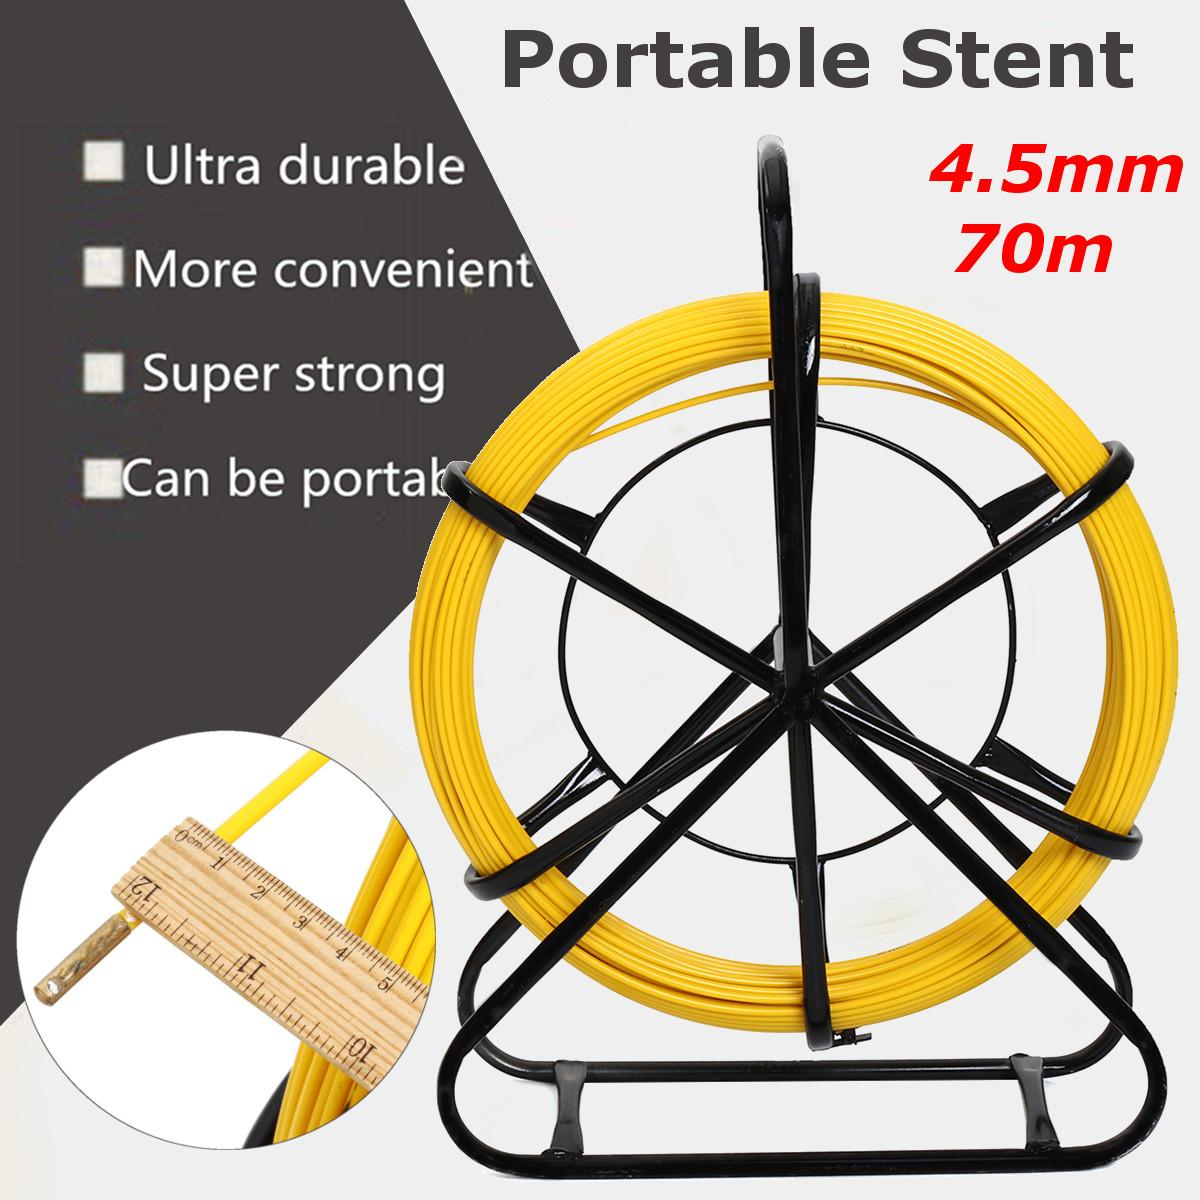 4.5mm Fish Tape Fiberglass Wire Cable 70m Length Running Rod Duct Rodder Puller